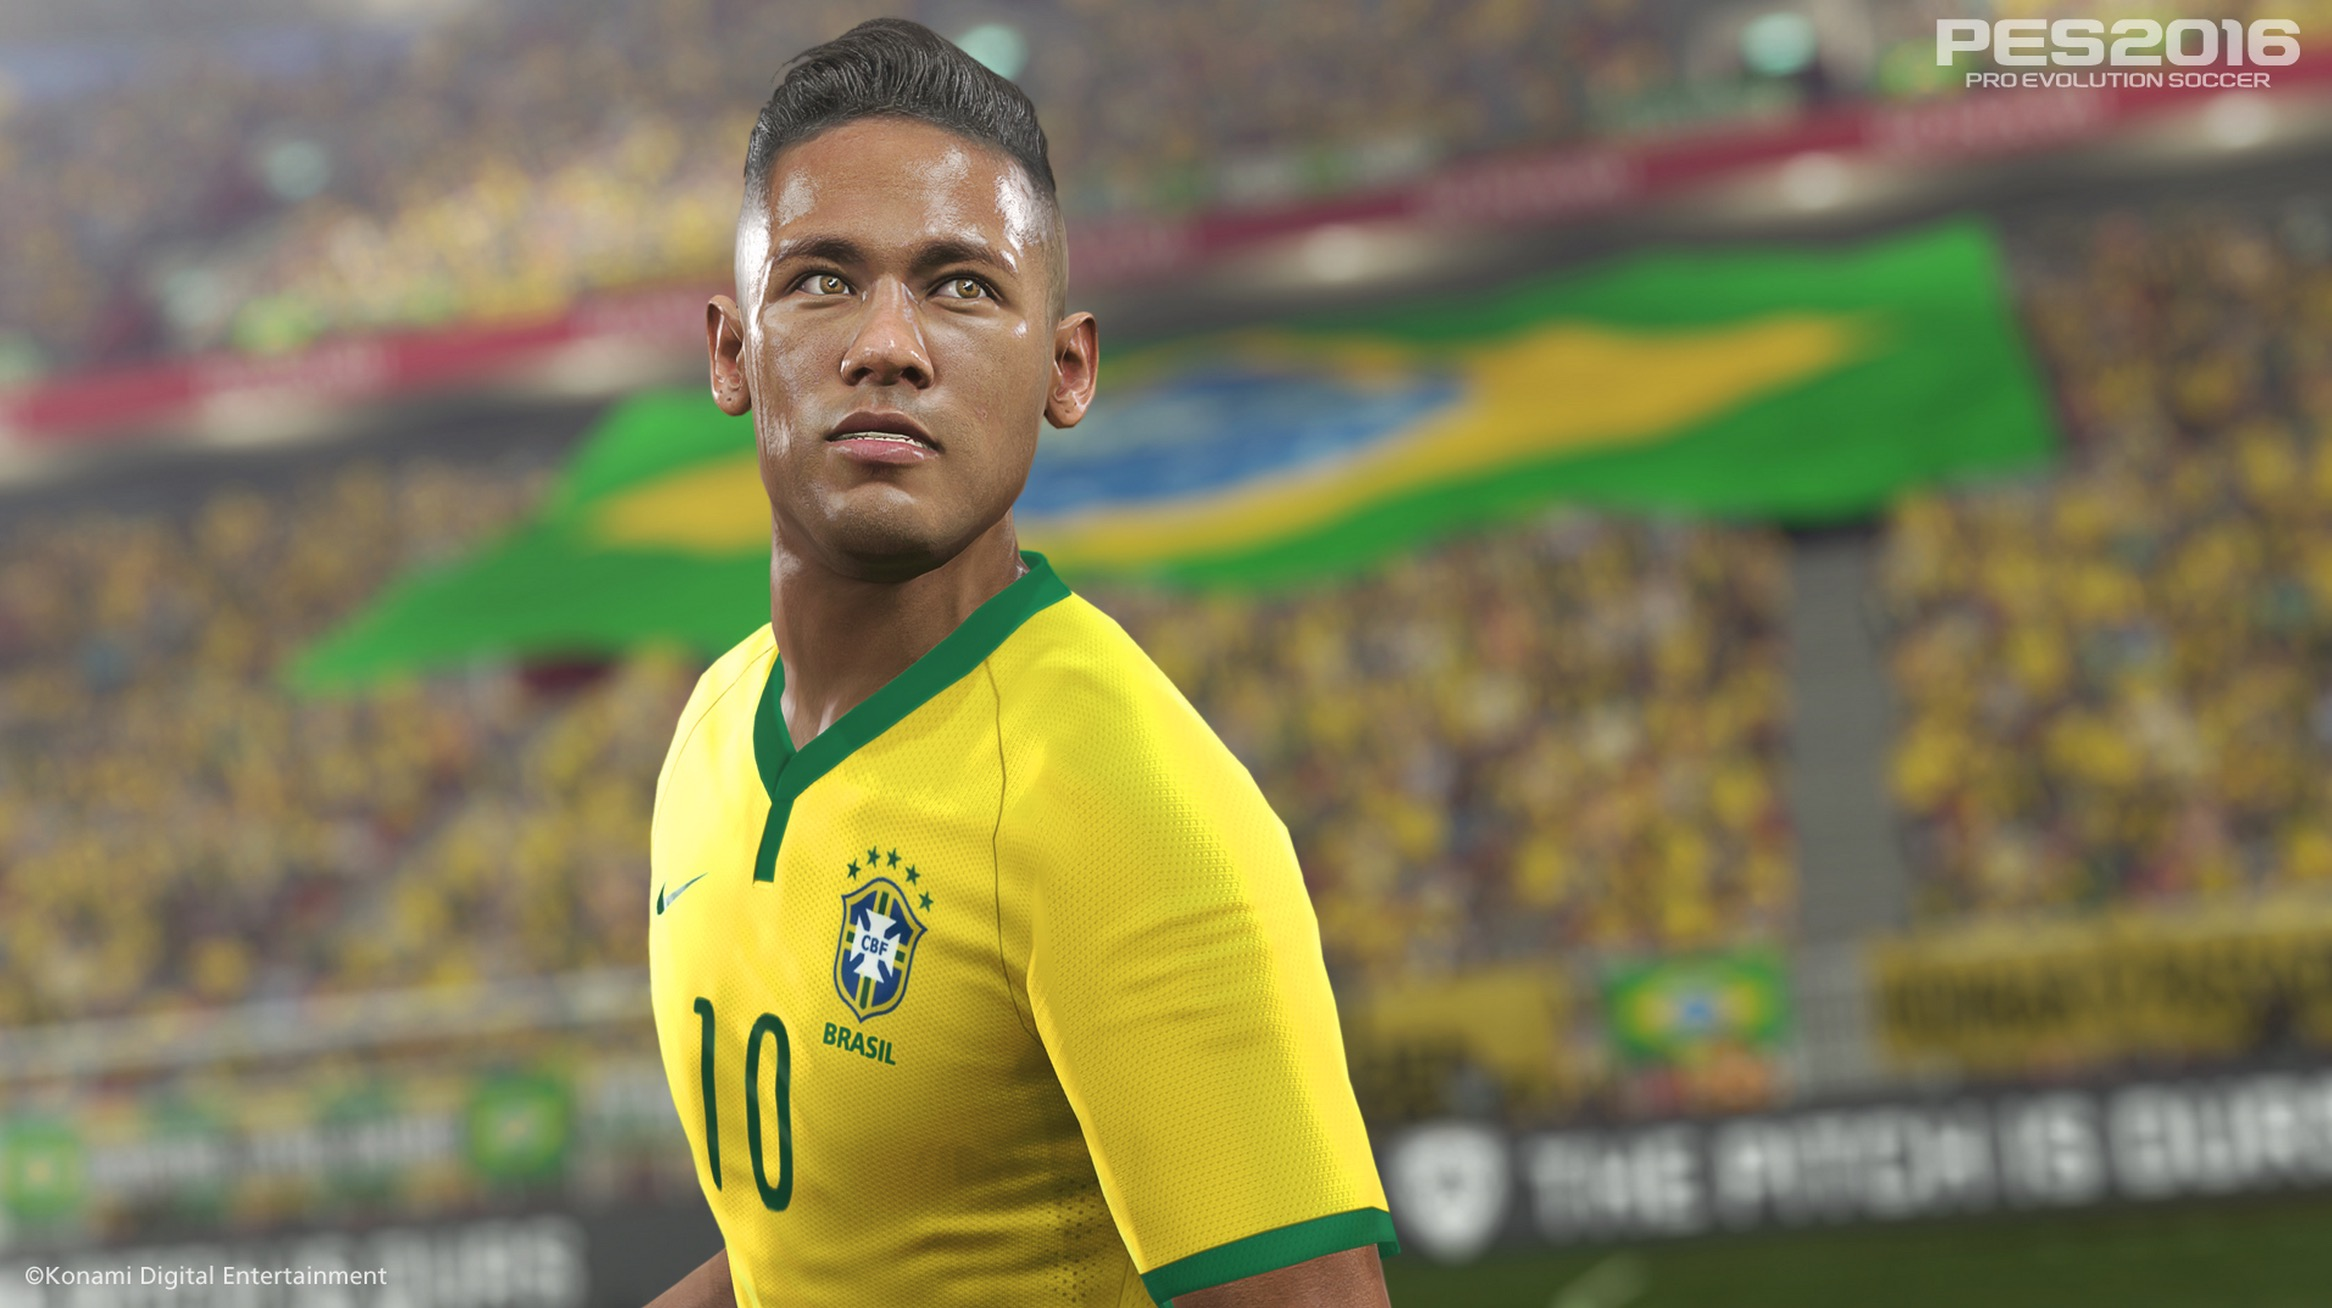 What to know about the PES 2016 demo that arrives well ahead of a FIFA 16 demo download.